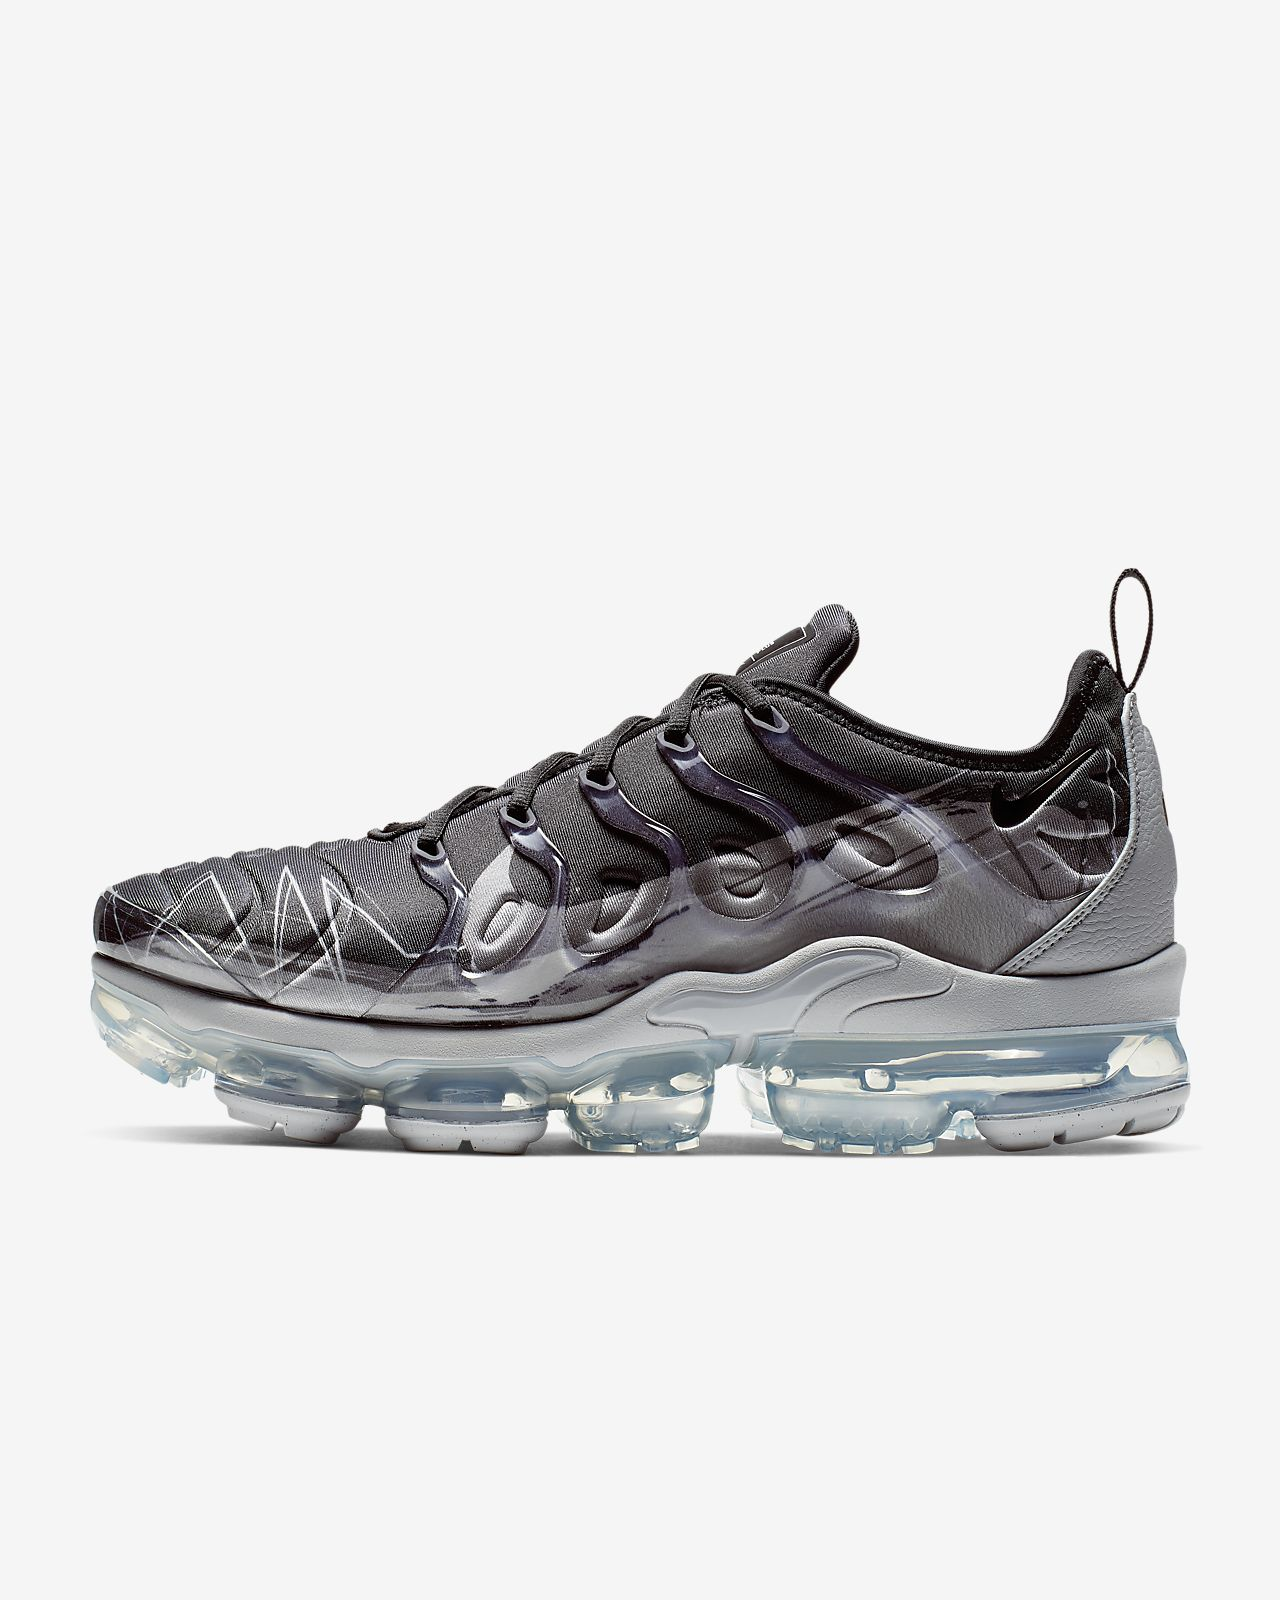 814c97fde Nike Air VaporMax Plus Men s Shoe. Nike.com CA